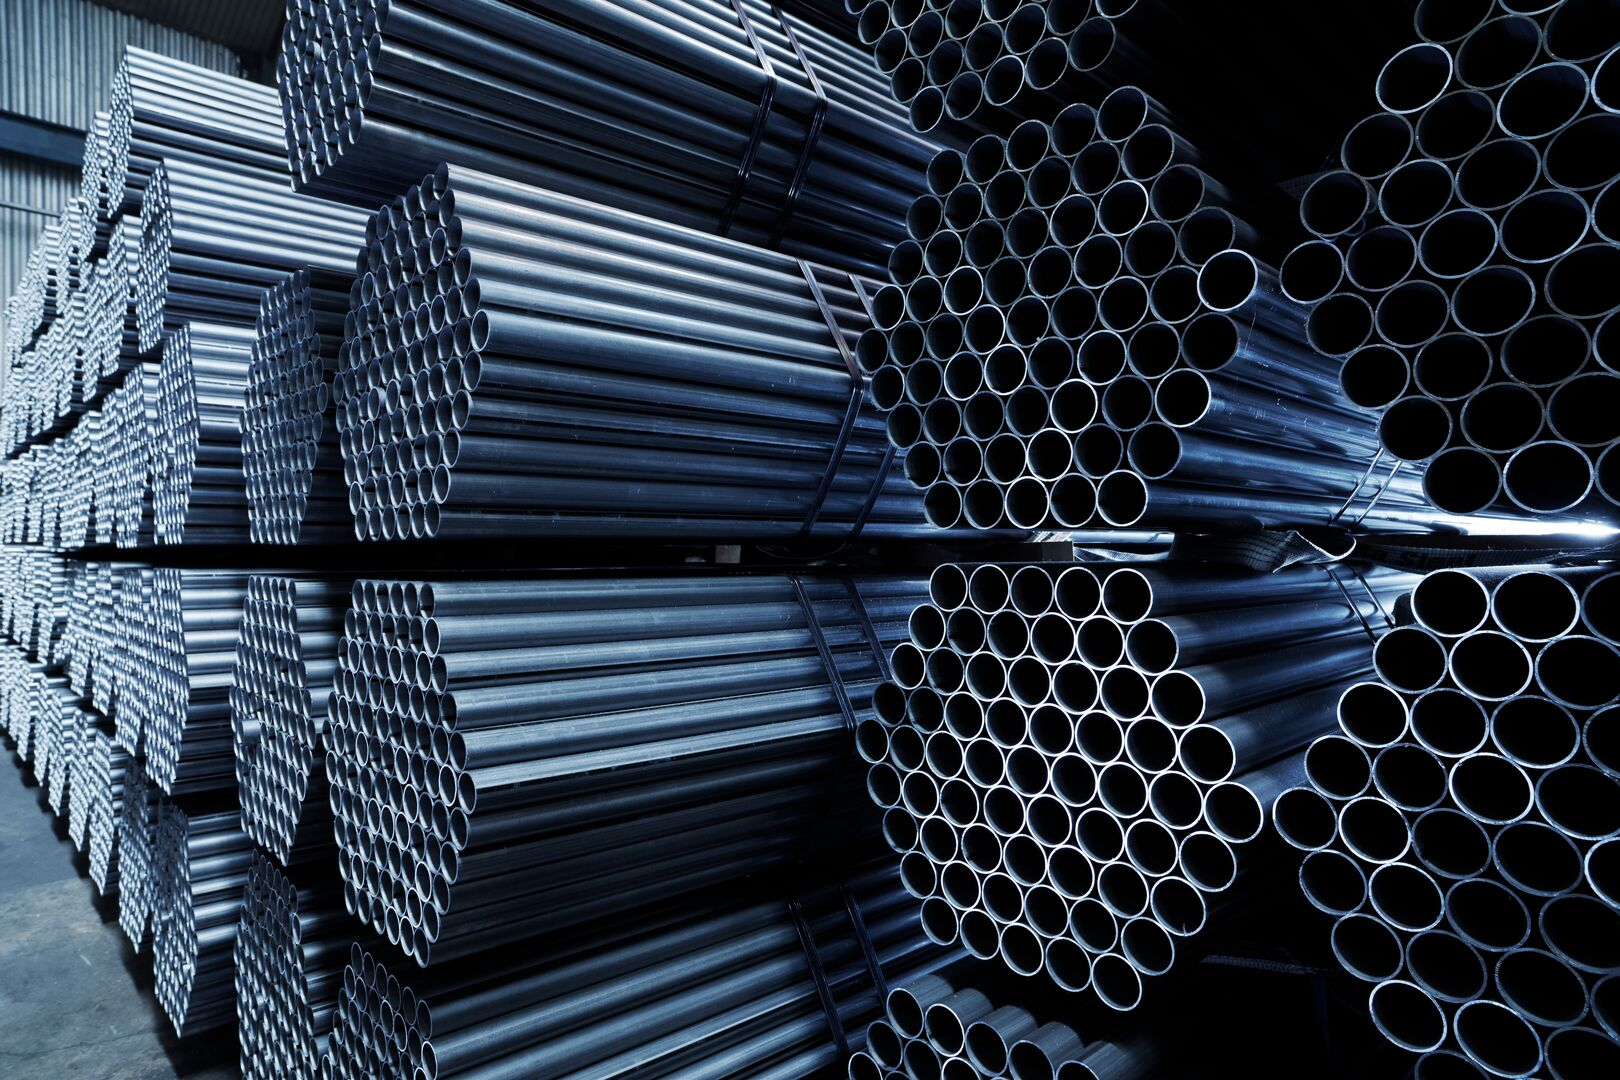 Precision tubes made in Maastricht by Tata Steel